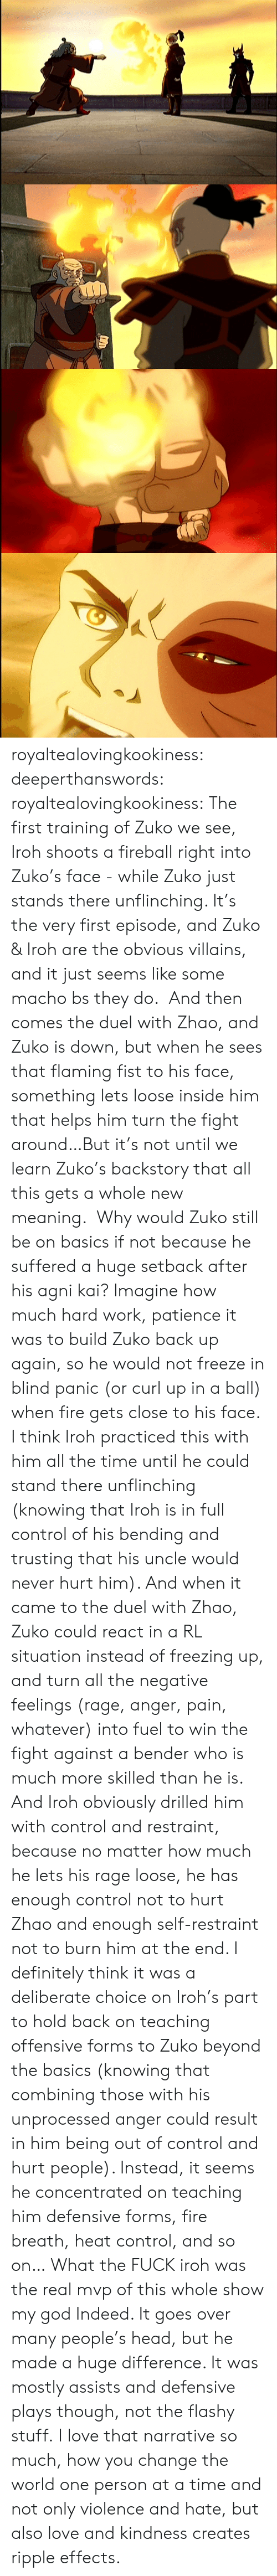 Patience: royaltealovingkookiness: deeperthanswords:  royaltealovingkookiness:   The first training of Zuko we see, Iroh shoots a fireball right into Zuko's face - while Zuko just stands there unflinching. It's the very first episode, and Zuko & Iroh are the obvious villains, and it just seems like some macho bs they do.  And then comes the duel with Zhao, and Zuko is down, but when he sees that flaming fist to his face, something lets loose inside him that helps him turn the fight around…But it's not until we learn Zuko's backstory that all this gets a whole new meaning.  Why would Zuko still be on basics if not because he suffered a huge setback after his agni kai? Imagine how much hard work, patience it was to build Zuko back up again, so he would not freeze in blind panic (or curl up in a ball) when fire gets close to his face. I think Iroh practiced this with him all the time until he could stand there unflinching (knowing that Iroh is in full control of his bending and trusting that his uncle would never hurt him). And when it came to the duel with Zhao, Zuko could react in a RL situation instead of freezing up, and turn all the negative feelings (rage, anger, pain, whatever) into fuel to win the fight against a bender who is much more skilled than he is.  And Iroh obviously drilled him with control and restraint, because no matter how much he lets his rage loose, he has enough control not to hurt Zhao and enough self-restraint not to burn him at the end. I definitely think it was a deliberate choice on Iroh's part to hold back on teaching offensive forms to Zuko beyond the basics (knowing that combining those with his unprocessed anger could result in him being out of control and hurt people). Instead, it seems he concentrated on teaching him defensive forms, fire breath, heat control, and so on…   What the FUCK iroh was the real mvp of this whole show my god  Indeed. It goes over many people's head, but he made a huge difference. It was mostly assists and defensive plays though, not the flashy stuff. I love that narrative so much, how you change the world one person at a time and not only violence and hate, but also love and kindness creates ripple effects.